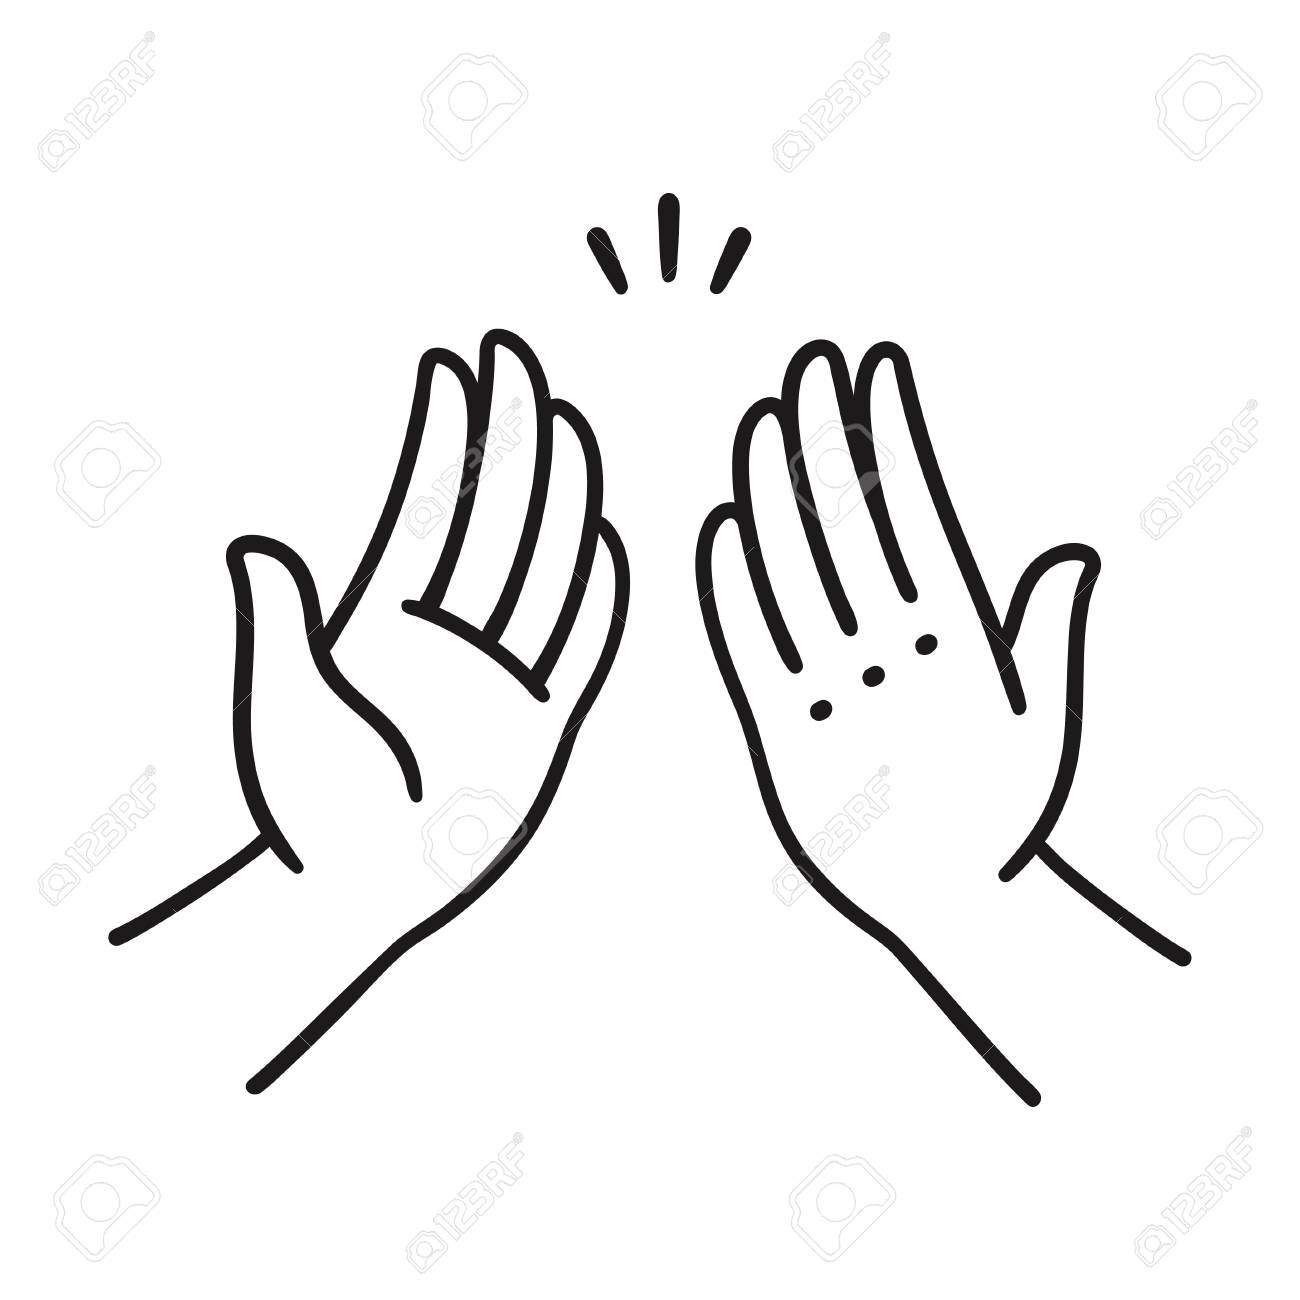 Sep of two hands clapping in high five gesture. Simple cartoon style vector illustration. - 92847692